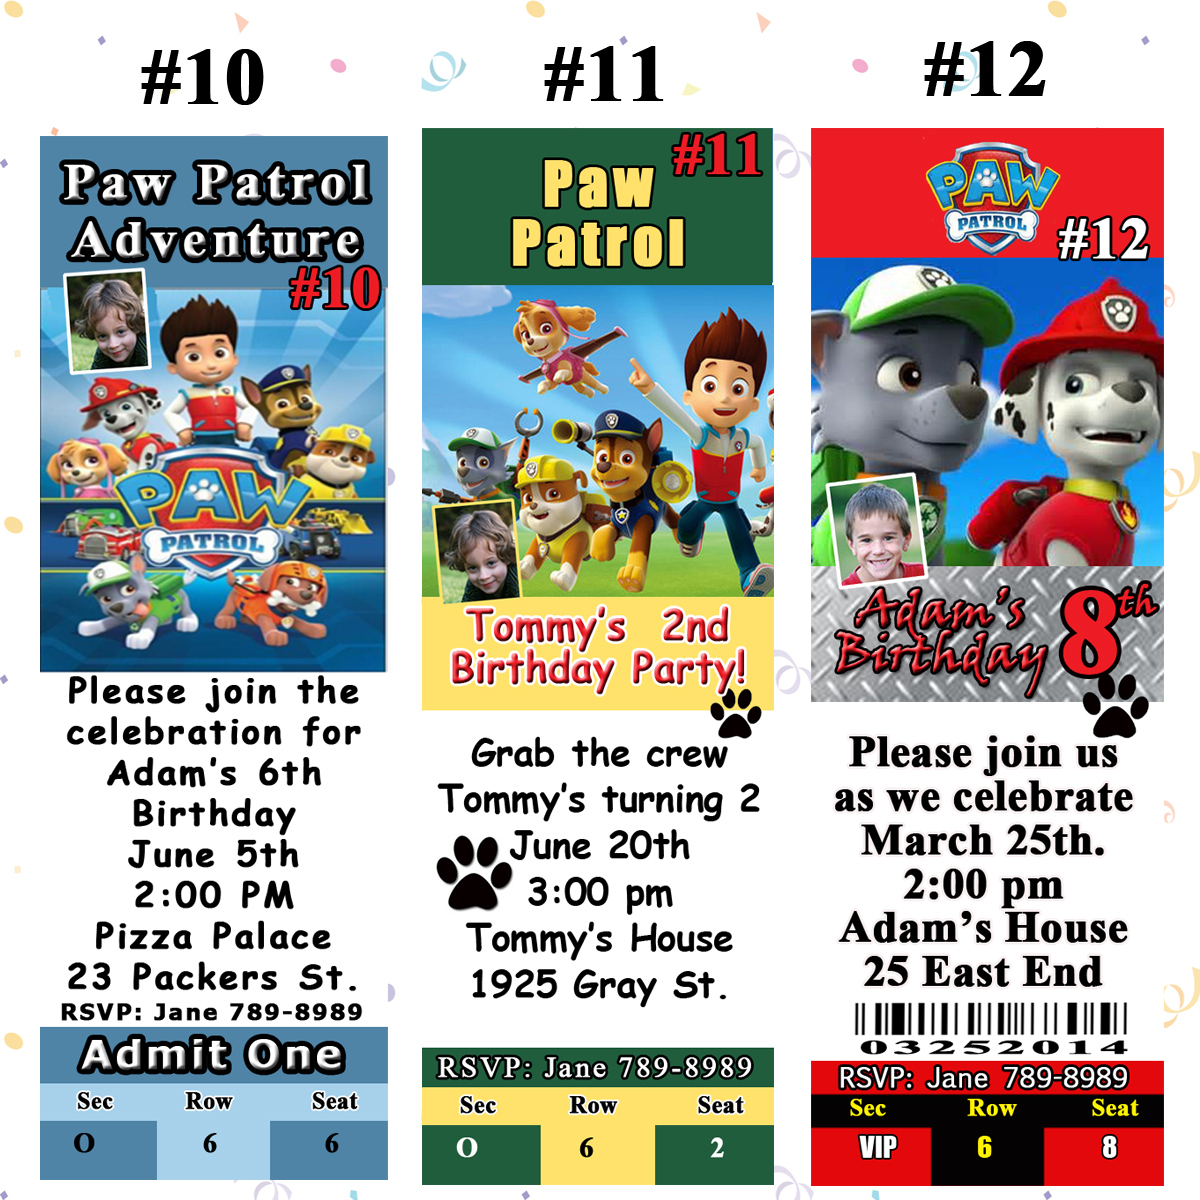 Paw Patrol Birthday Invitations You Prnt and 14 similar items